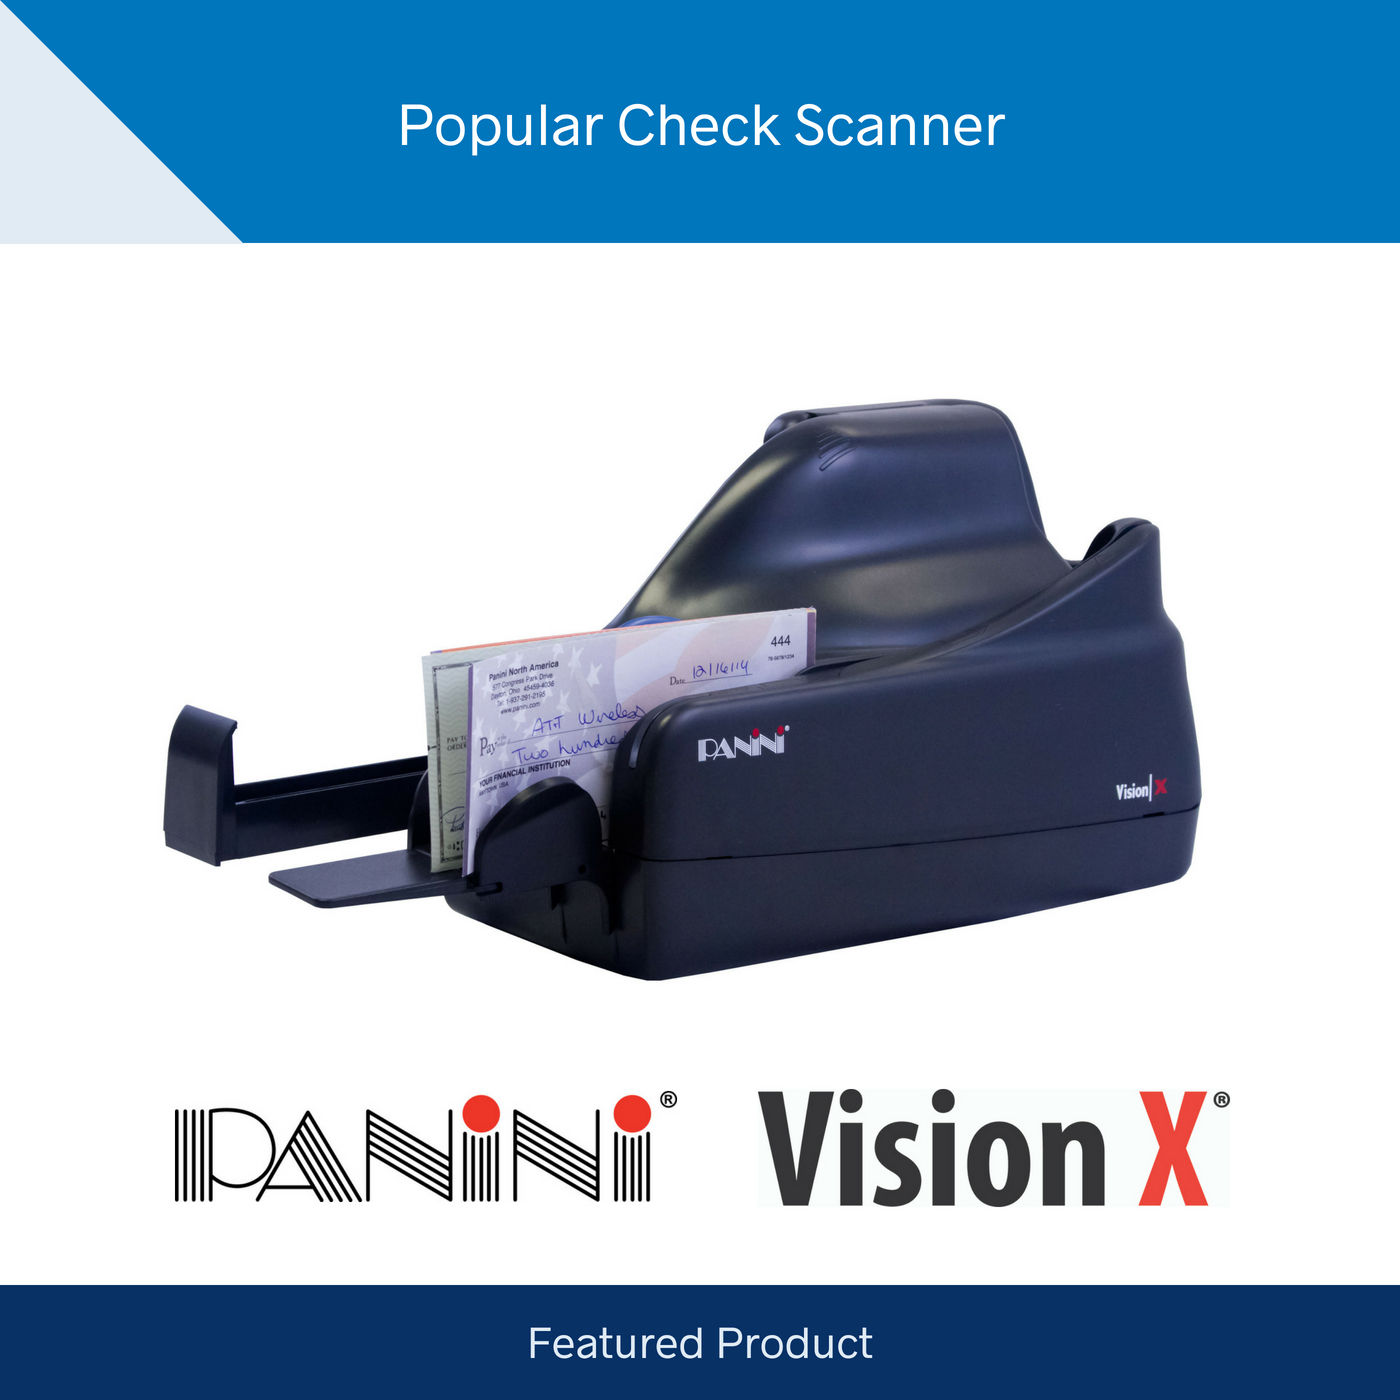 Panini Vision X Scanner